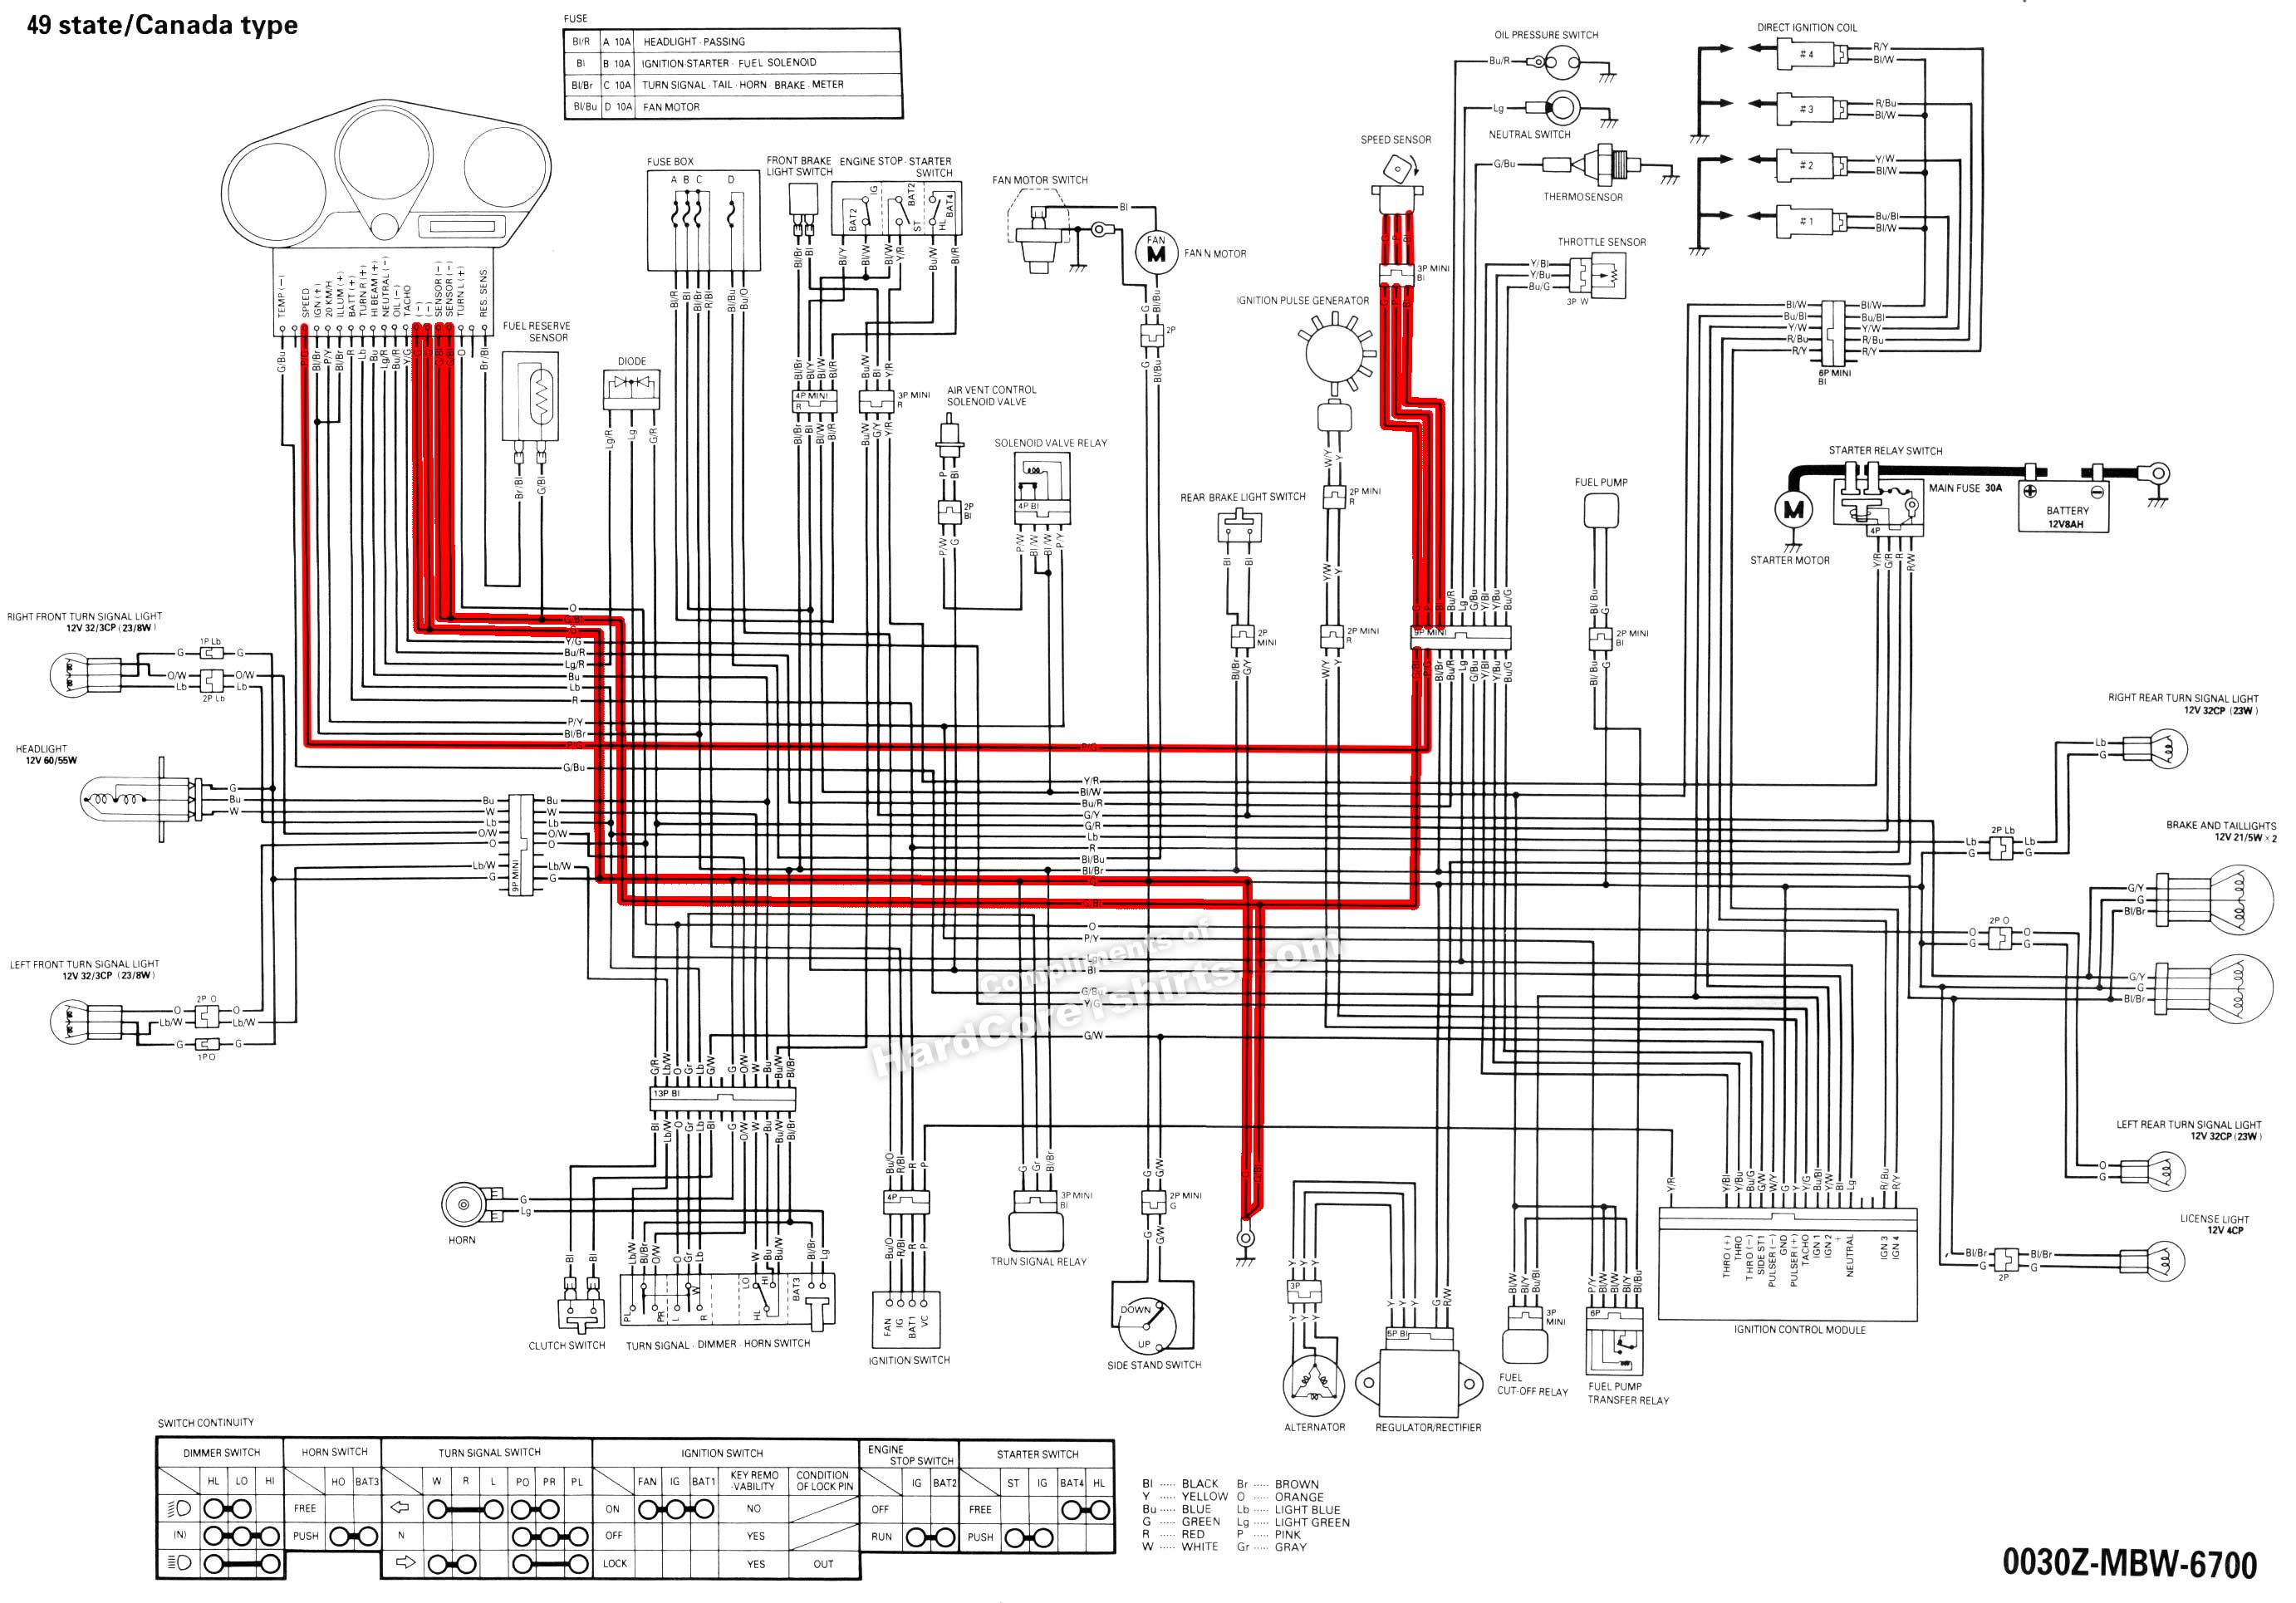 88643d1151601321 how do i connect speedo cbrf4_wiring_diagram speedo need some help! electrical problem cbr forum enthusiast forums 2008 honda cbr600rr wiring diagram at mifinder.co